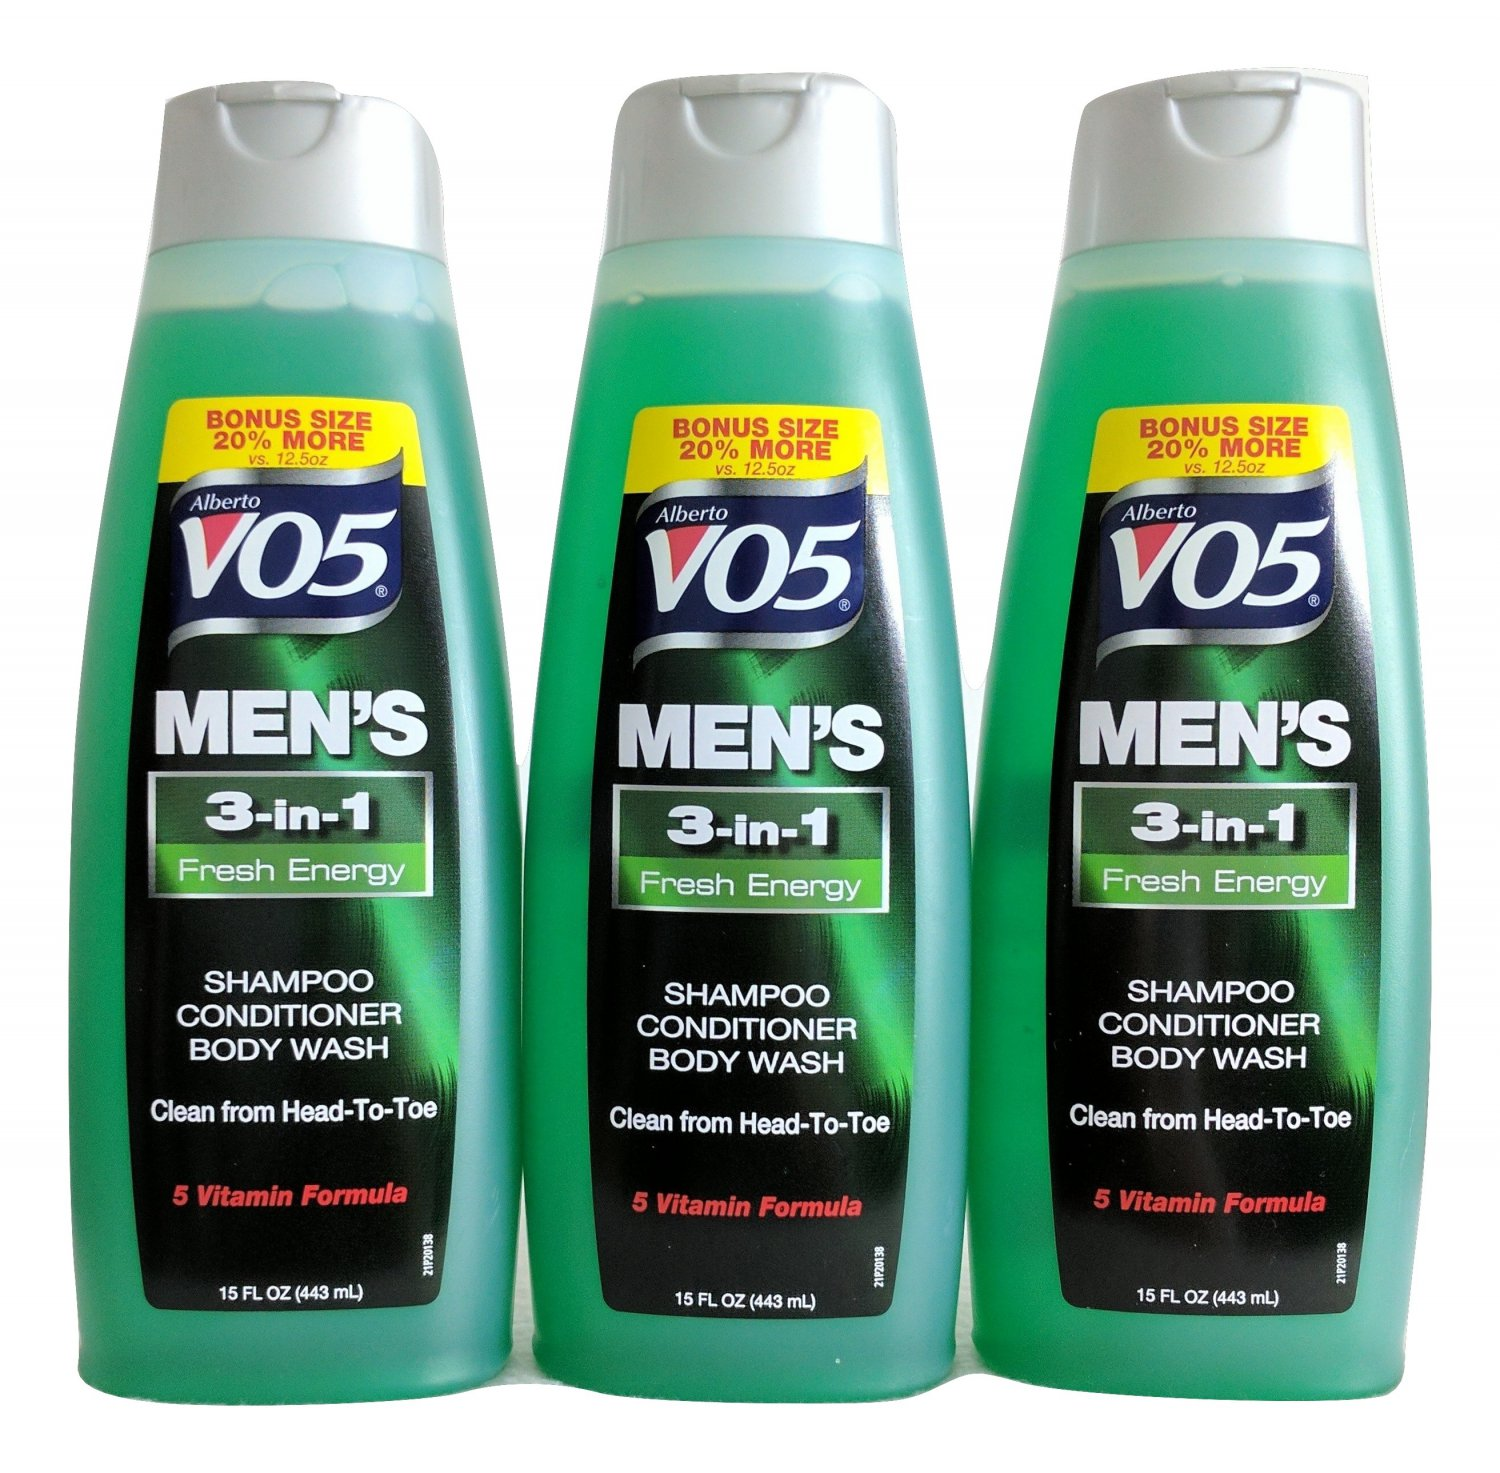 Three VO5 Men's Fresh Energy, 3-in-1, Shampoo-Conditioner-Body Wash